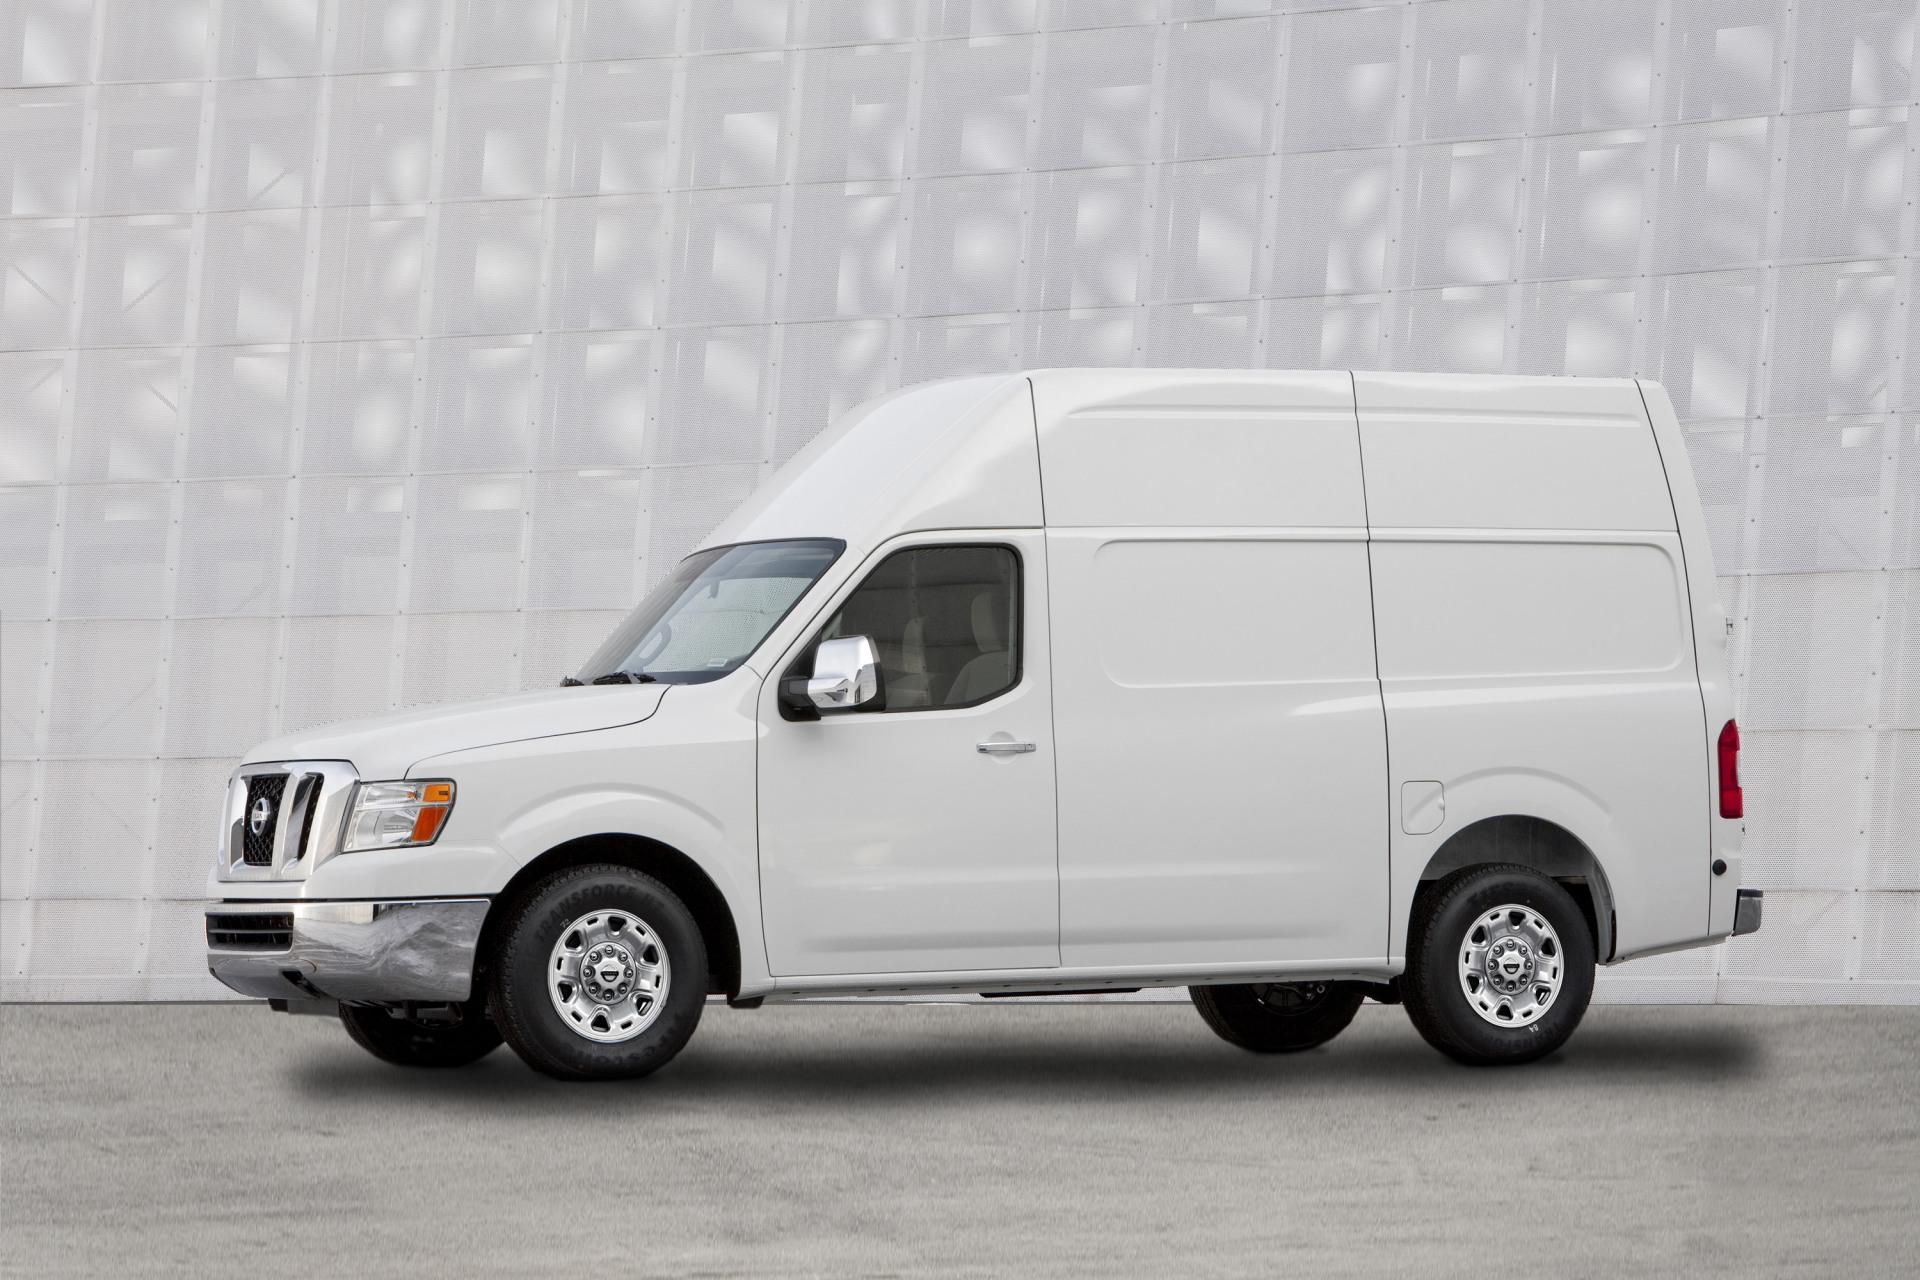 2011 Nissan NV News and Information